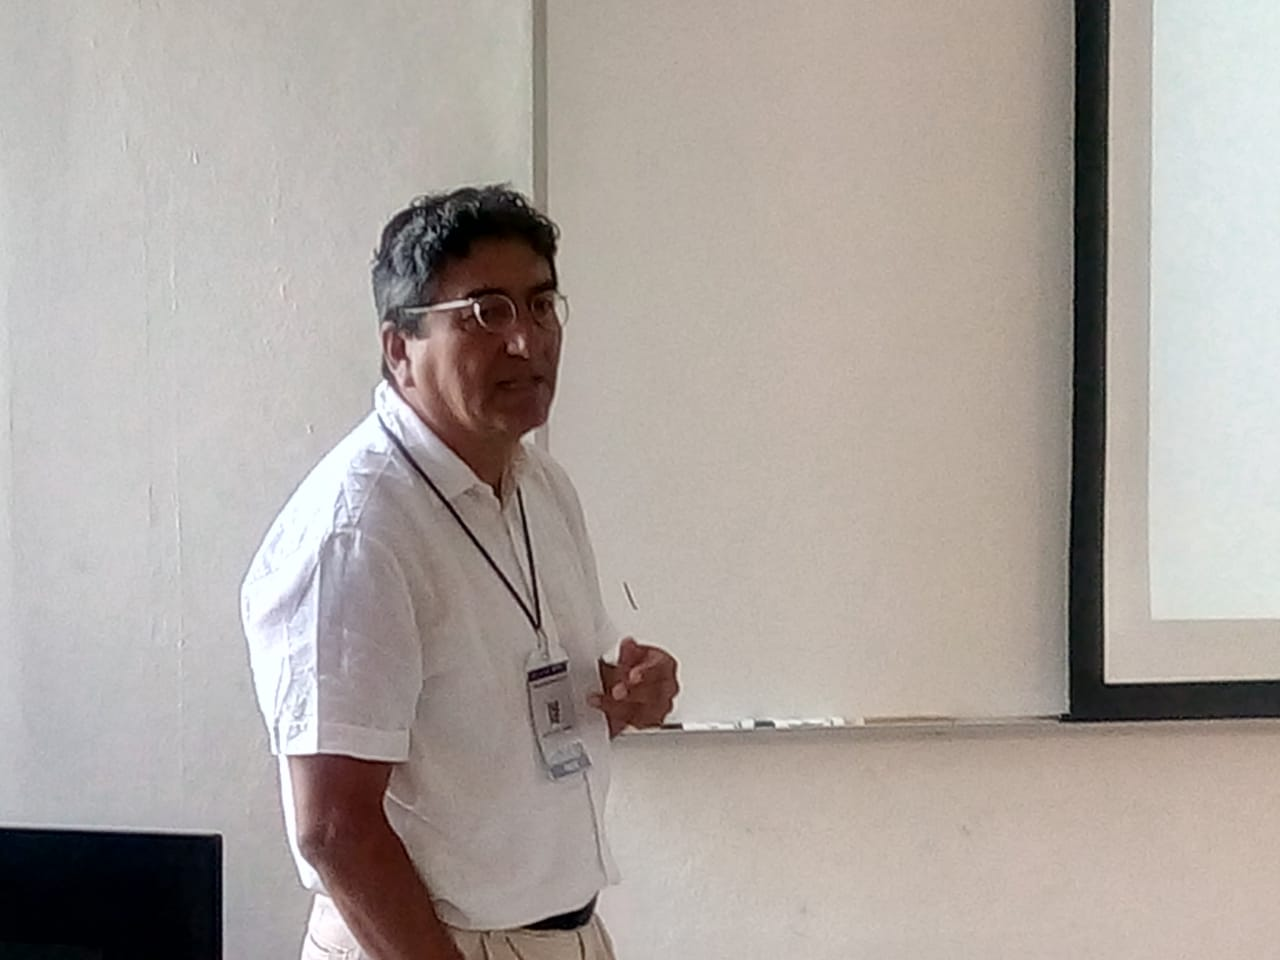 Sandro Macassi presenting his paper at IAMCR 2019